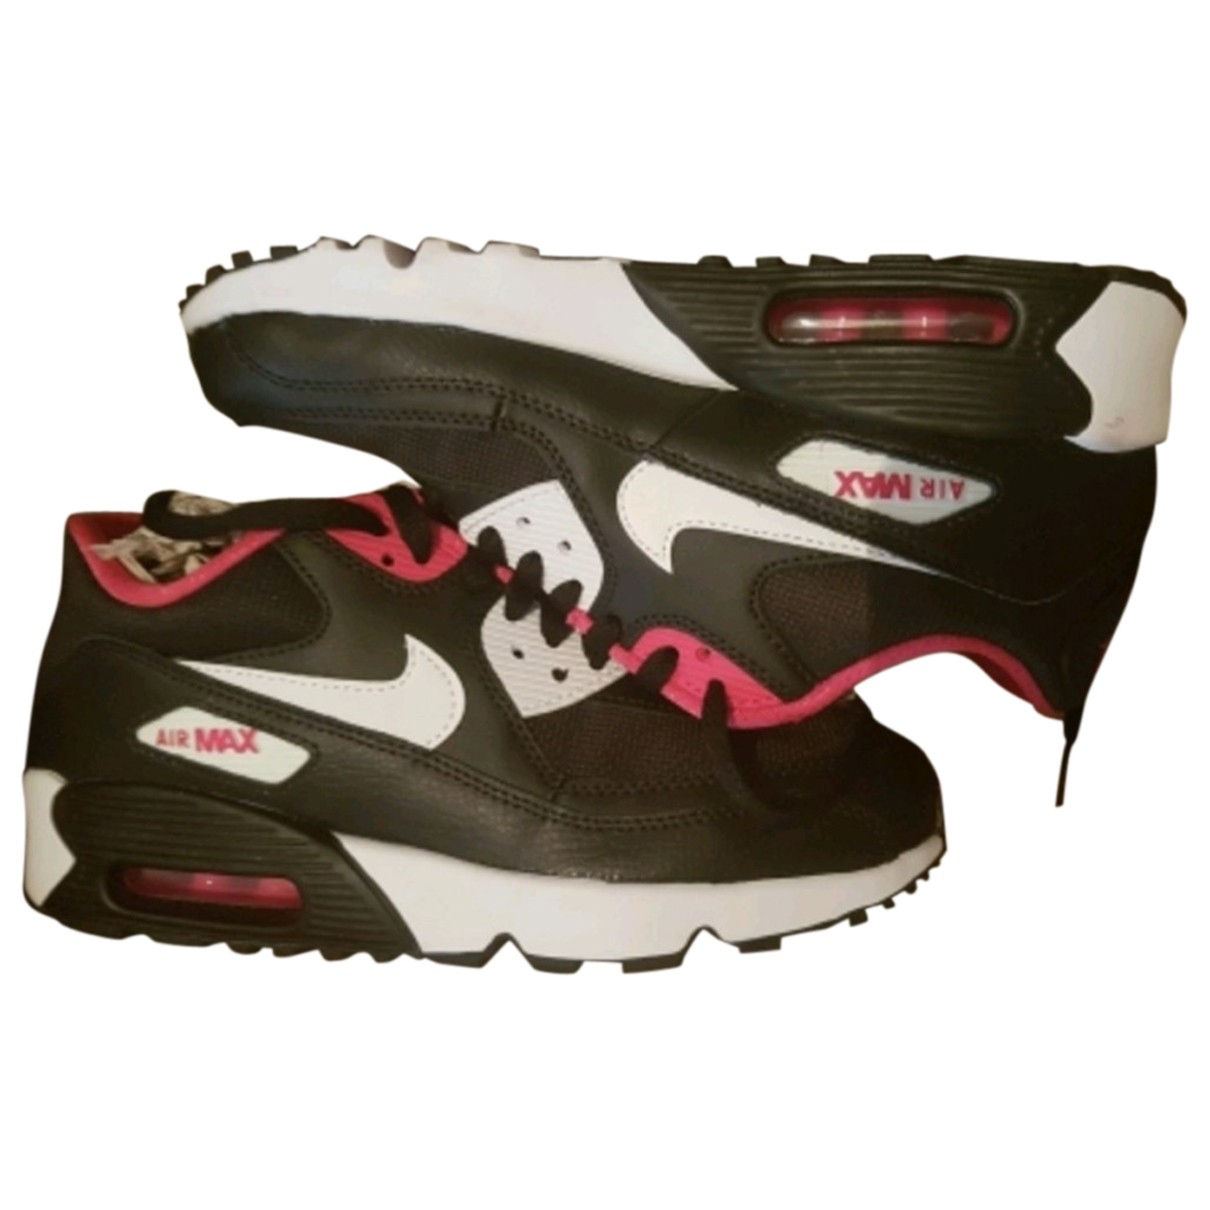 Nike Air Max 90 Black Leather Trainers for Women 38 EU